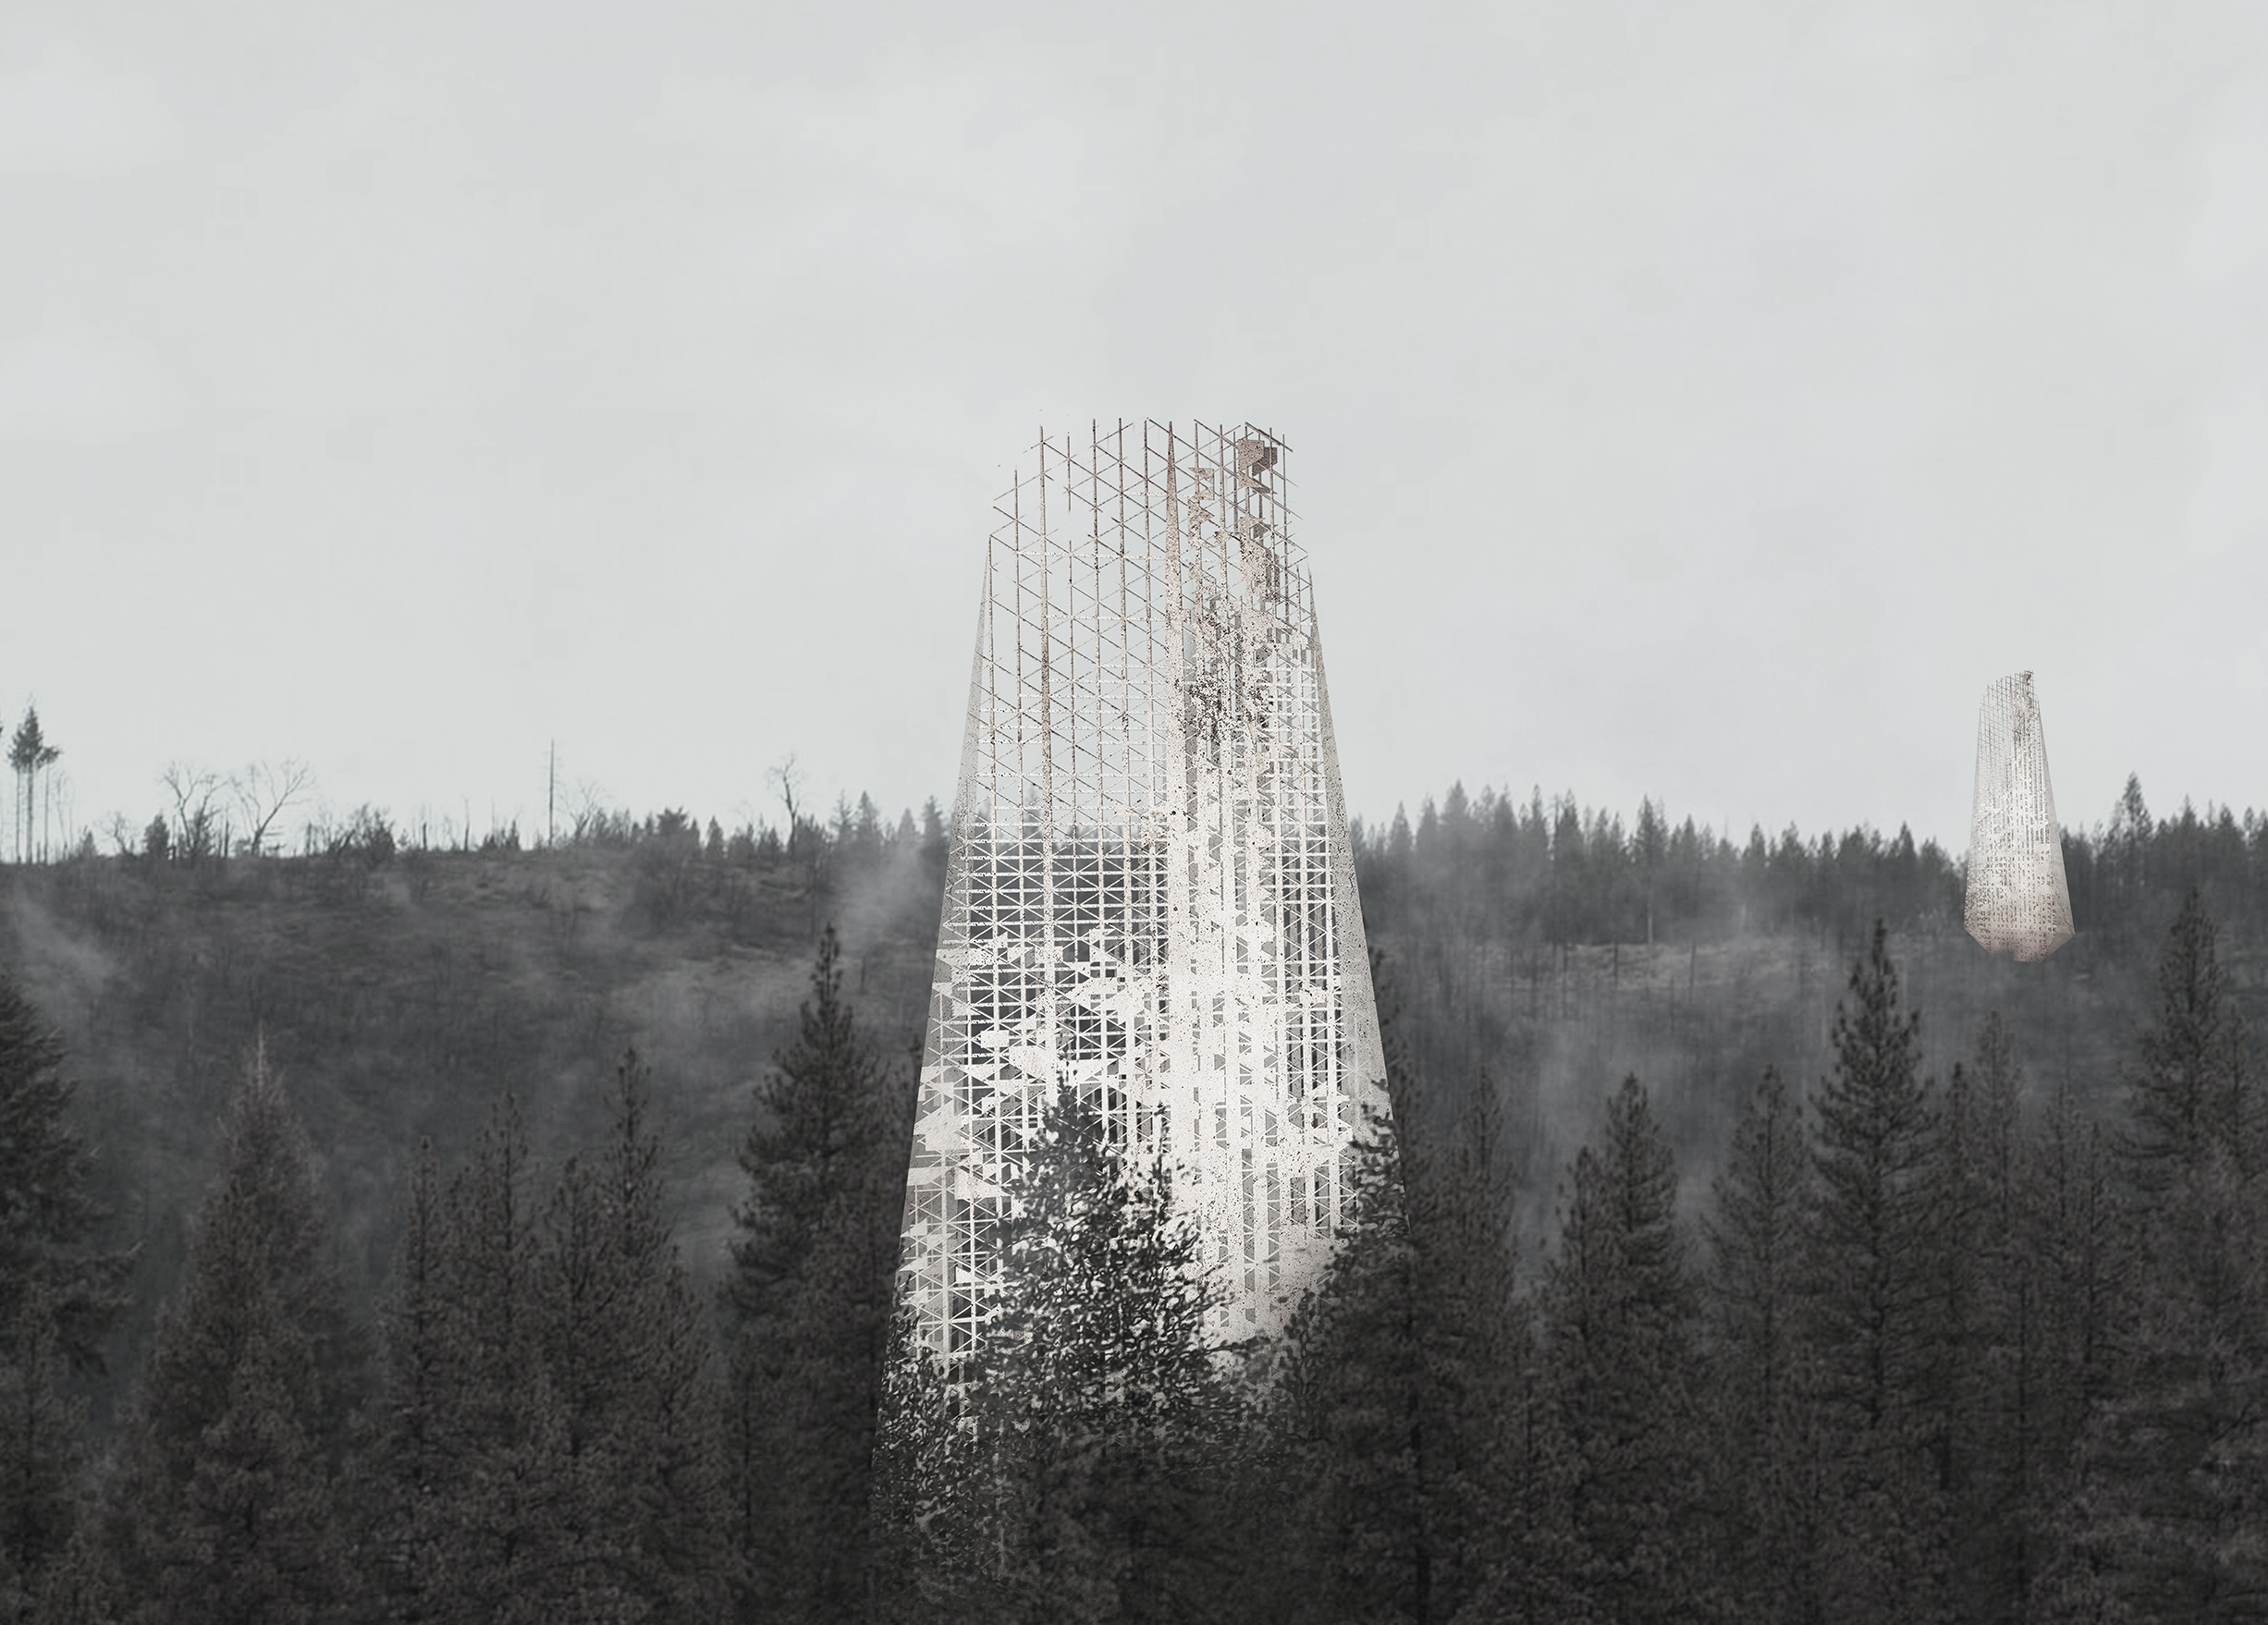 a skyscraper in the middle of forest